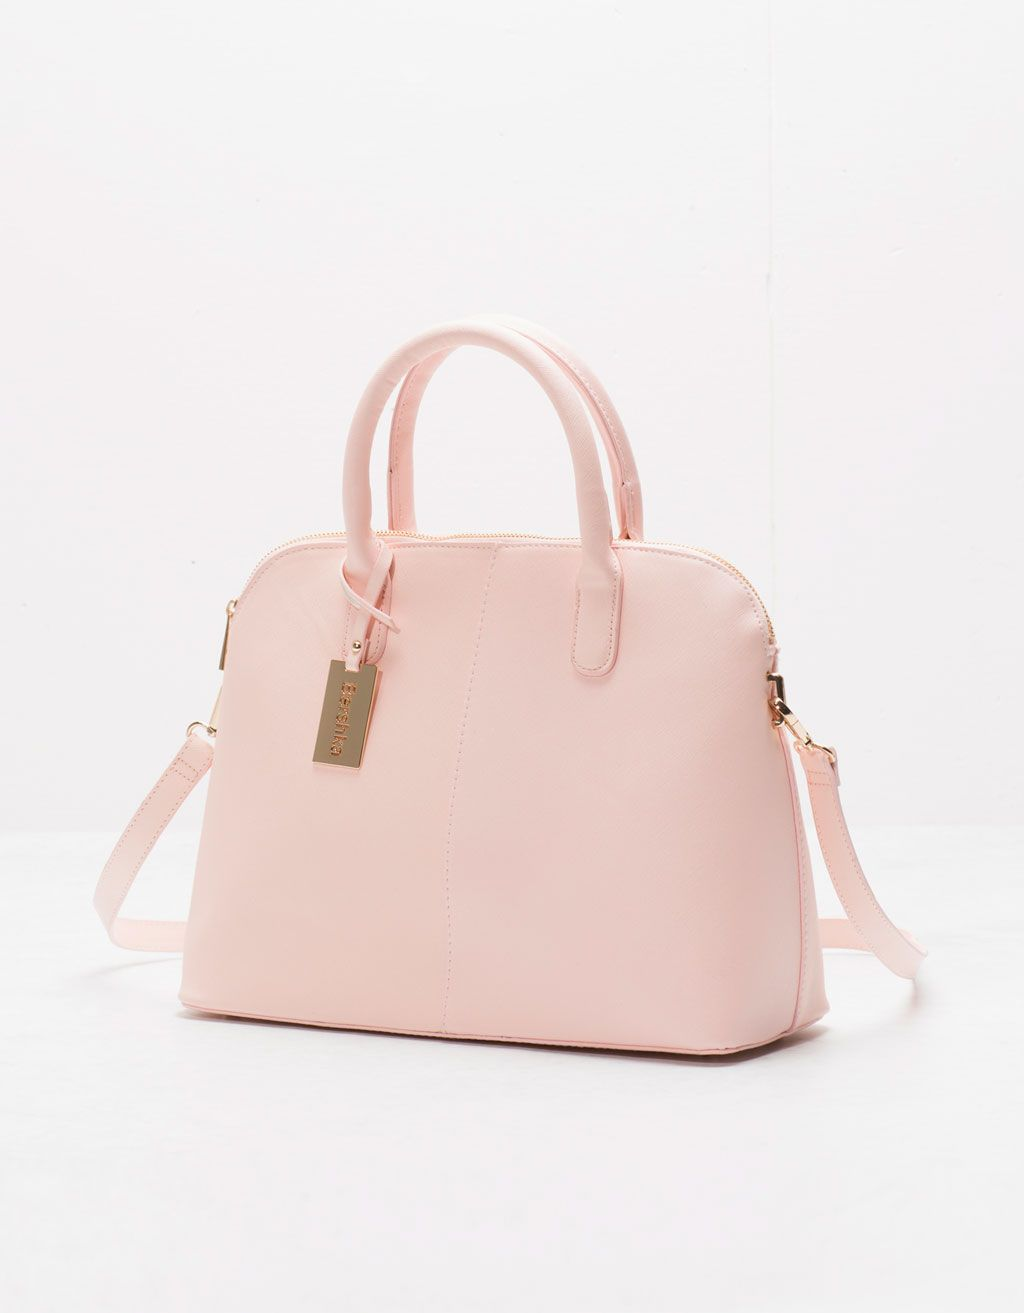 e40ad9125750 Saffiano lady bag - Bags - Bershka United Kingdom